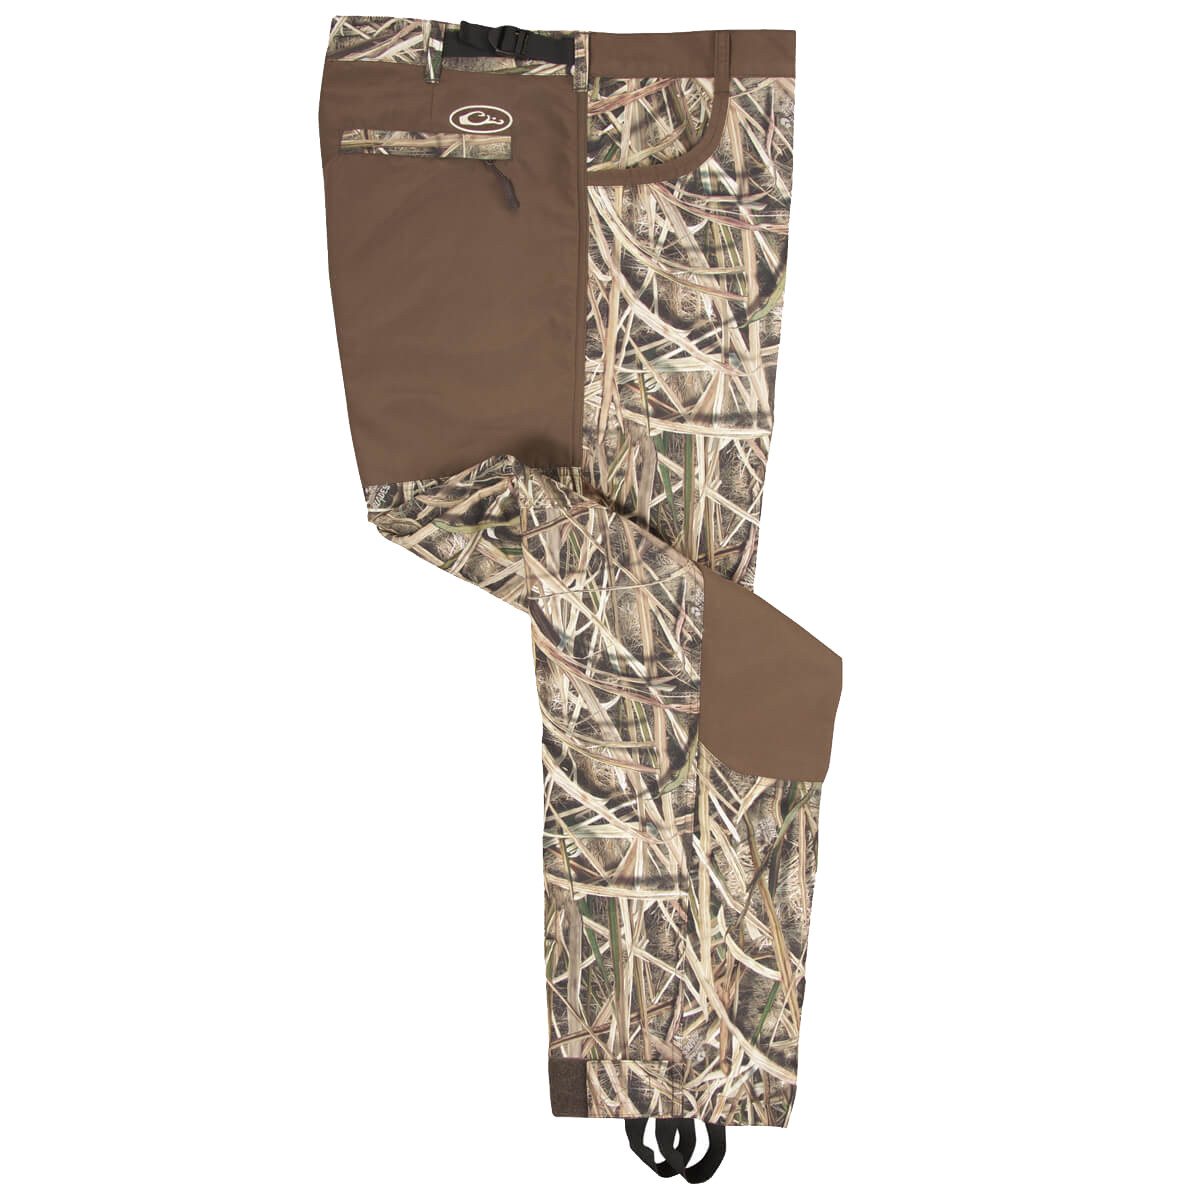 Drake Waterfowl Men's MST Jean-Cut Under-Wader Pant 2.0